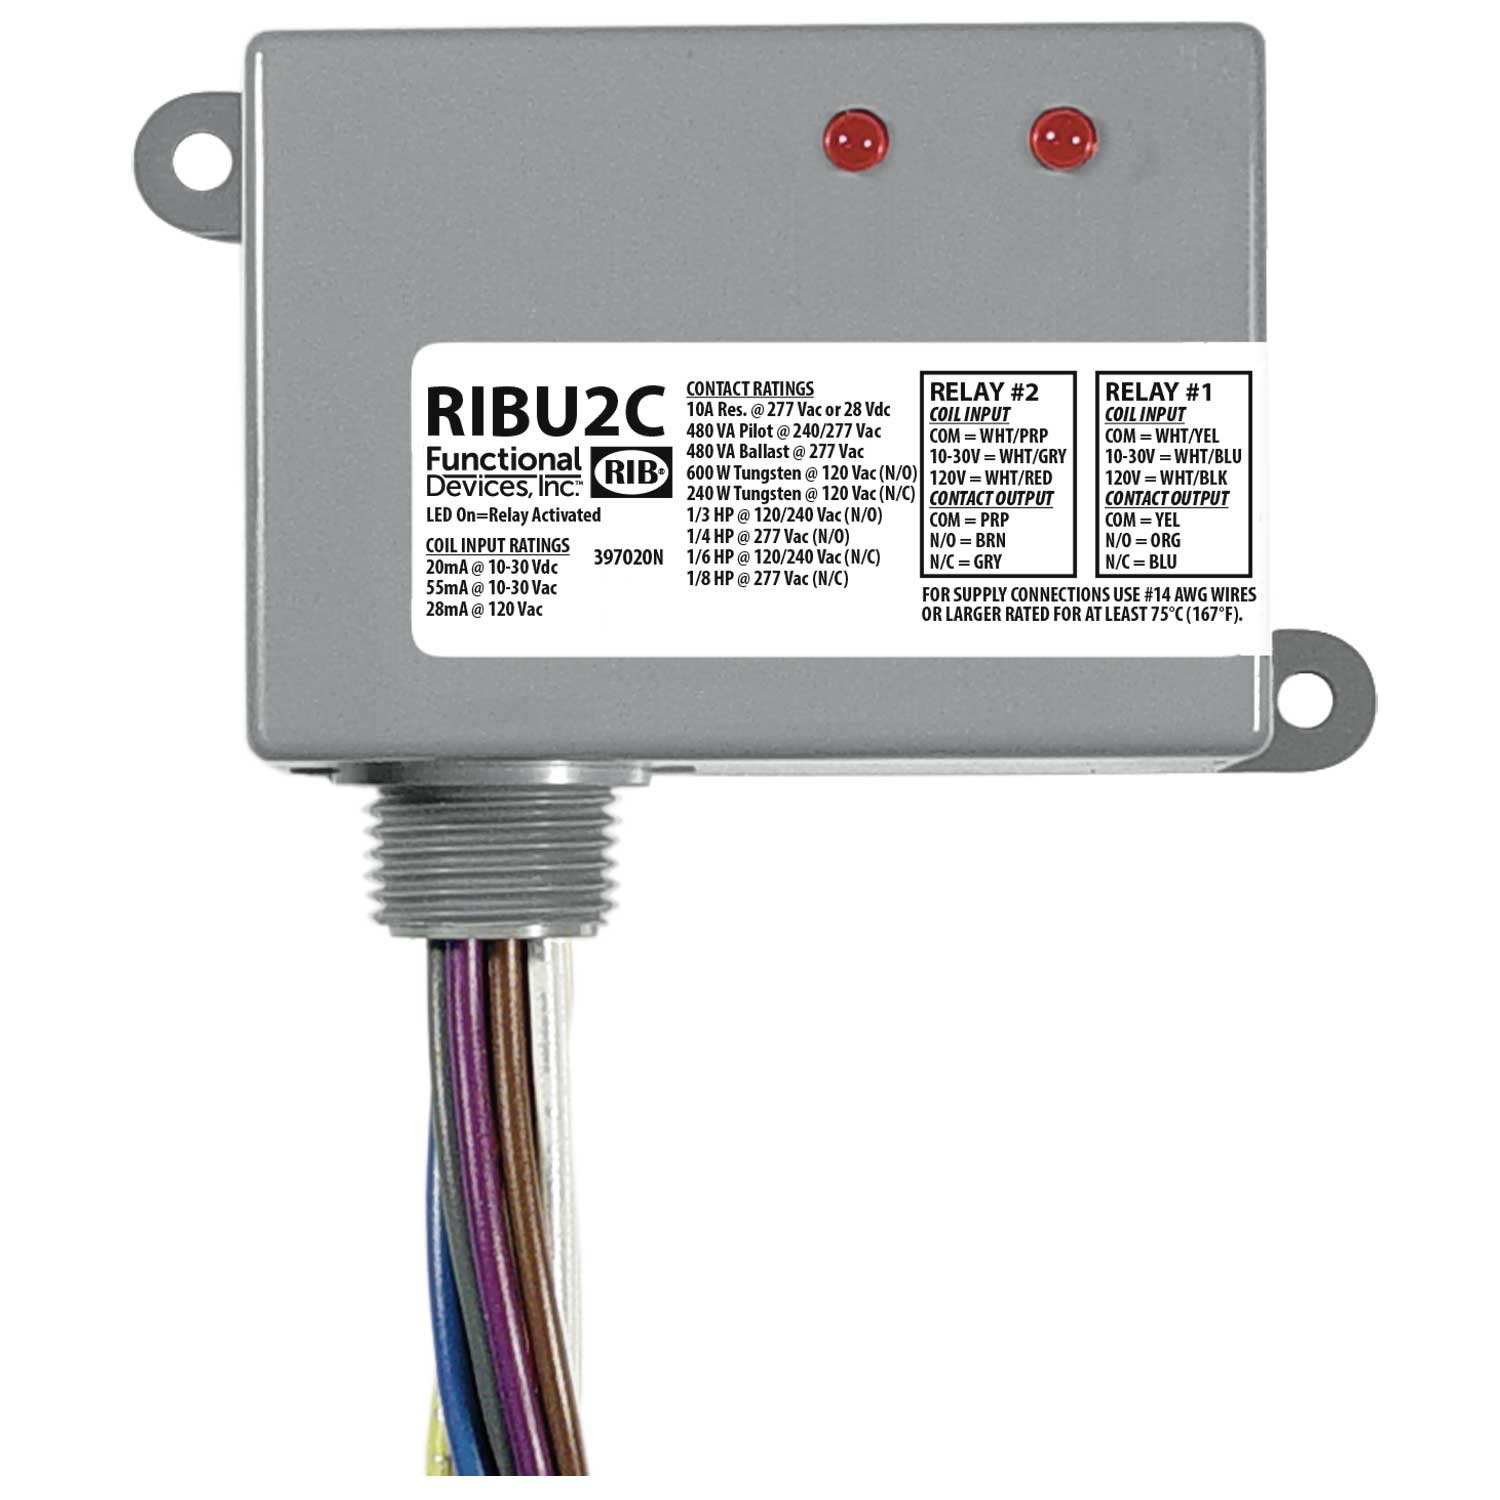 Functional Devices RIBU2C Enclosed Pilot Relay, 10 Amp 2 Spdt with 10-30 Vac/Dc/120 Vac Coil